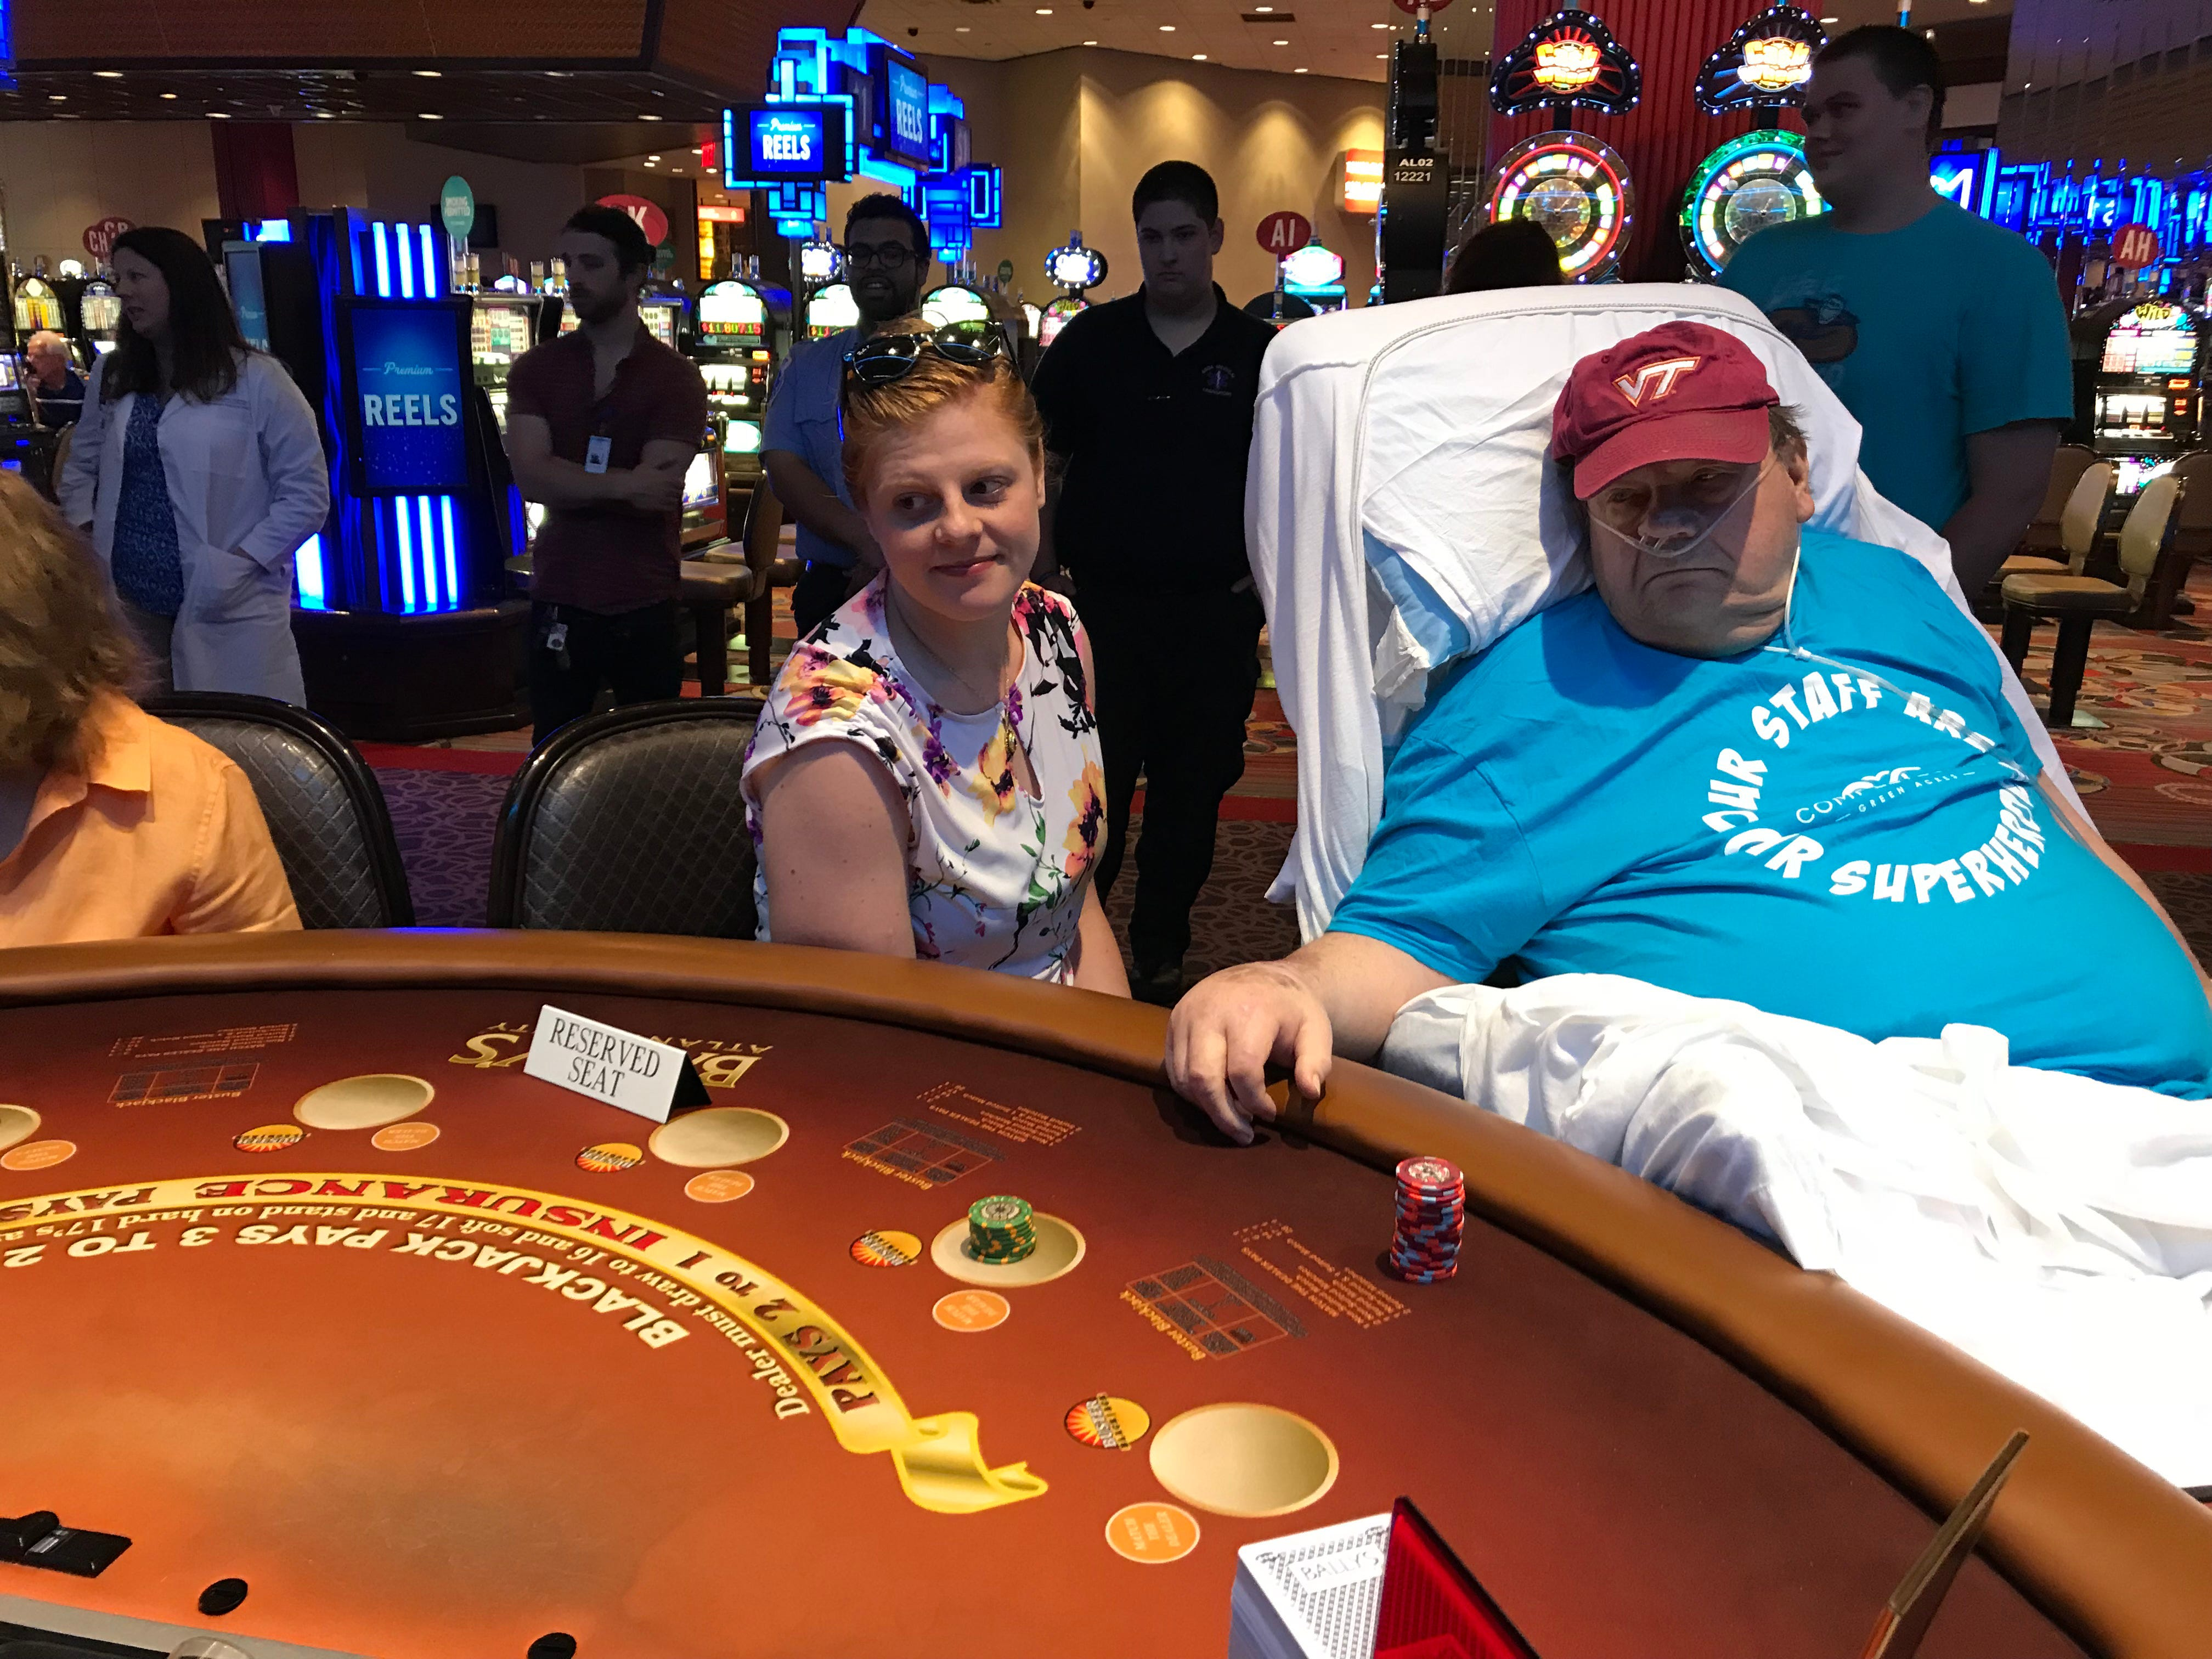 Cheapest poker tables in atlantic city english professional poker players